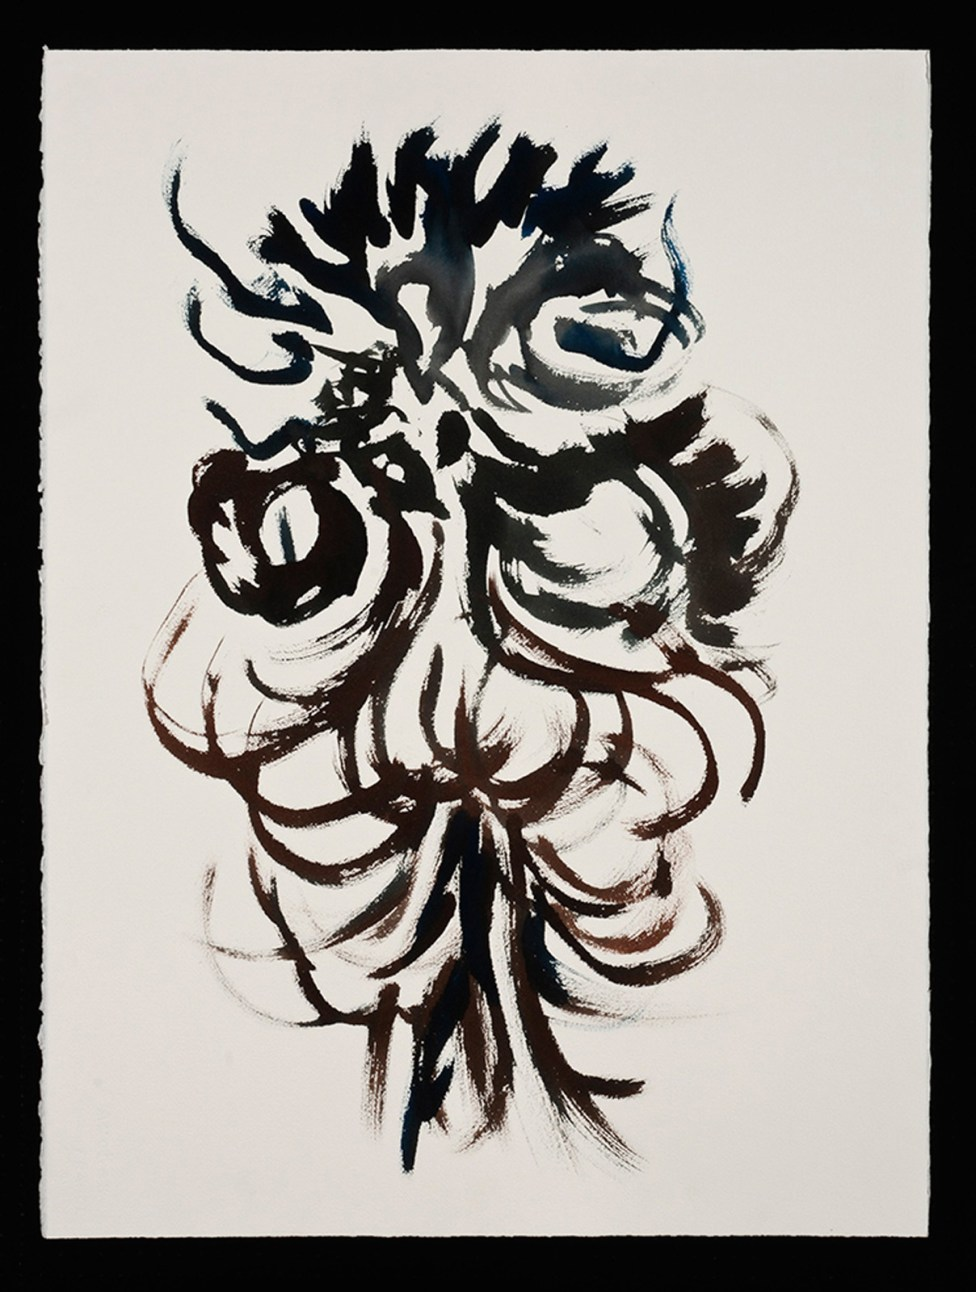 """Goddess for Louise Bourgeois, watercolor on paper, 30 x 22.5"""", 2014"""